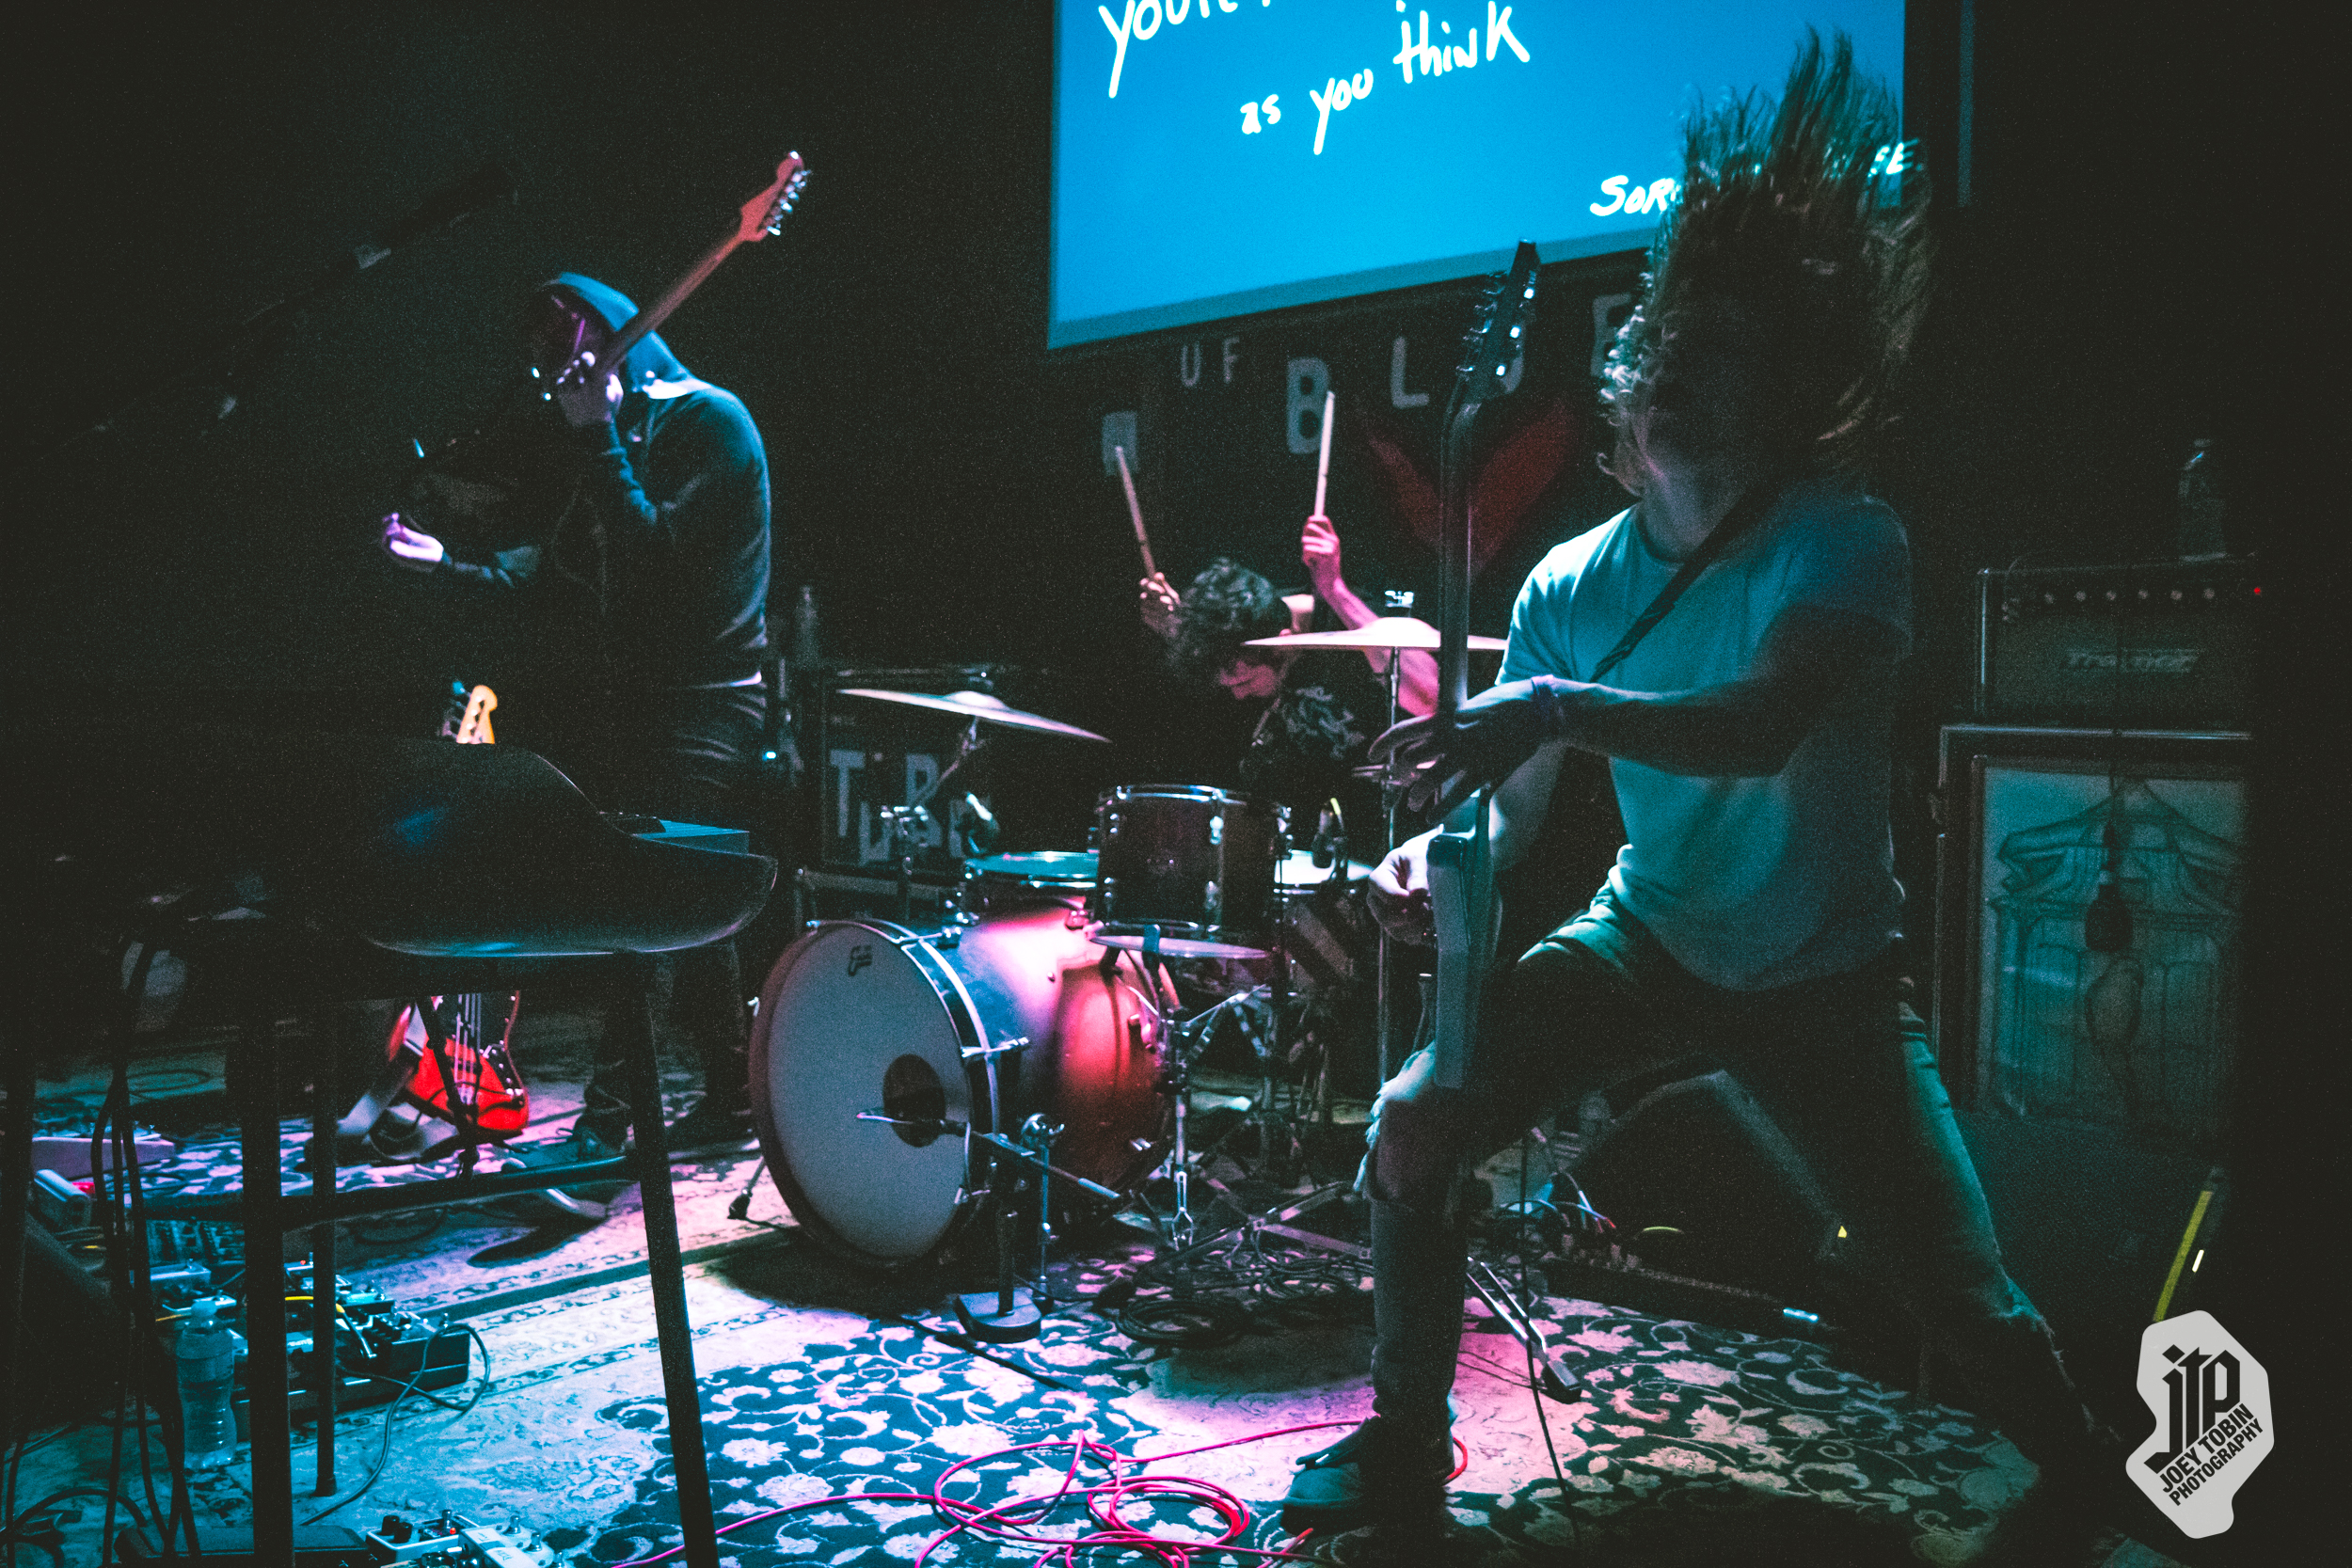 Sorority_Noise_HOB_San_Diego_Watermarked_0001.jpg